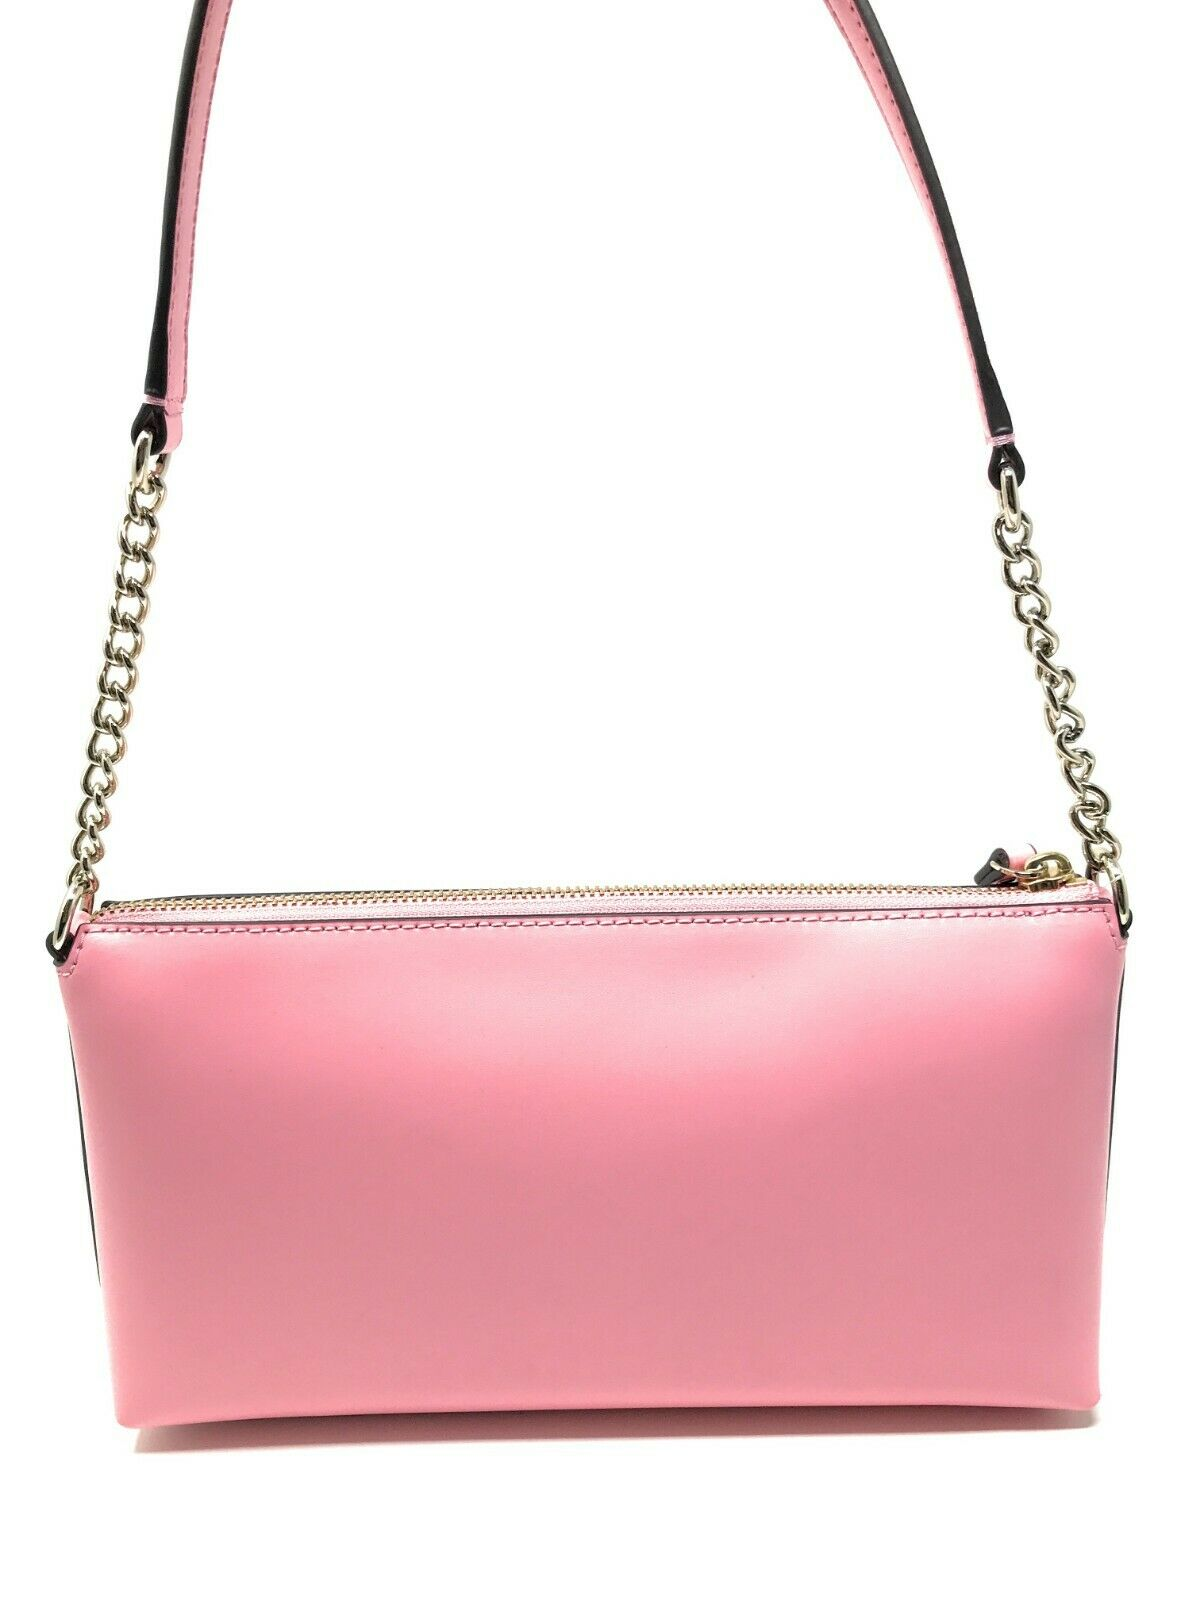 Kate Spade Declan Weller Street Pink Bright Carnation Leather Chain Crossbody